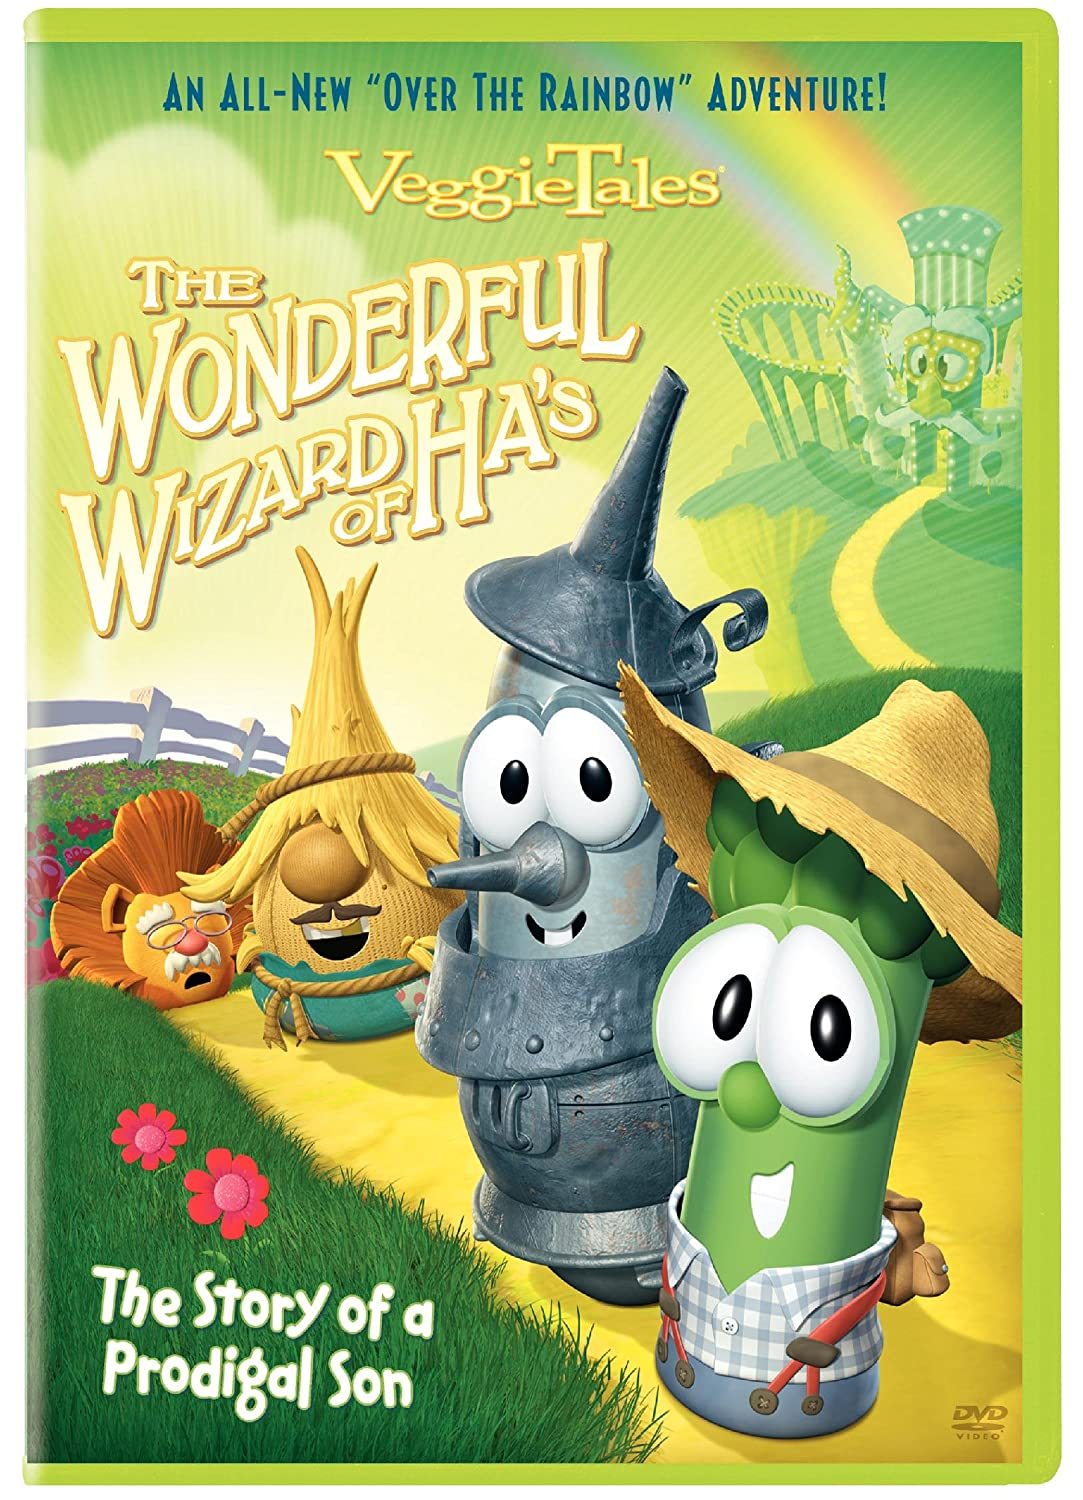 Veggie Tales: The Wonderful Wizard of Ha's Mike Nawrocki Phil Vischer Brian Roberts Warner Bros. Home Video